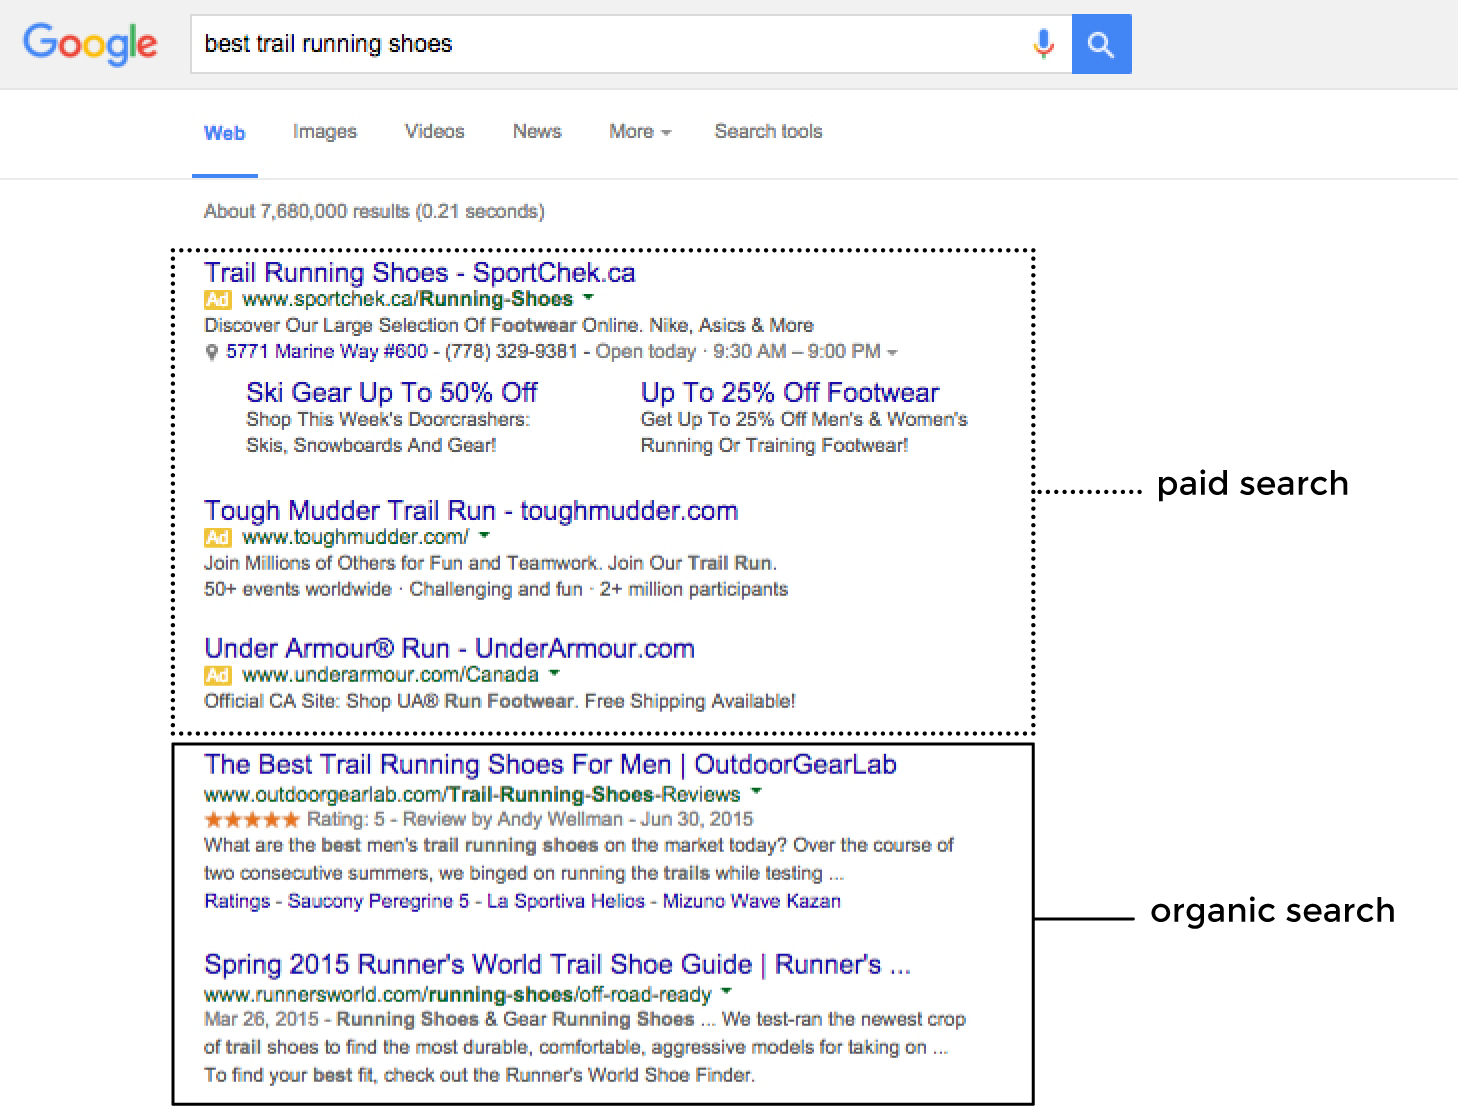 paid search versus organic search